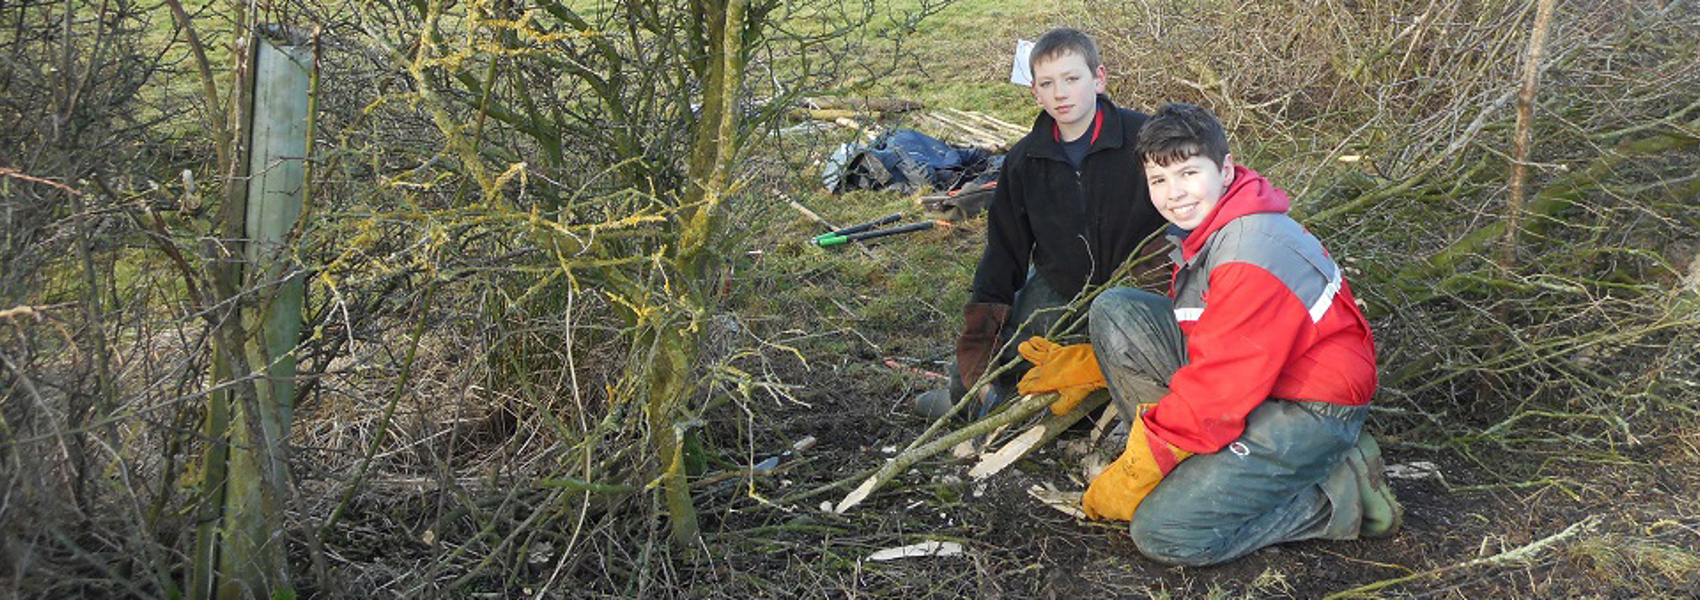 Staveley to host our Annual Hedge Laying competition